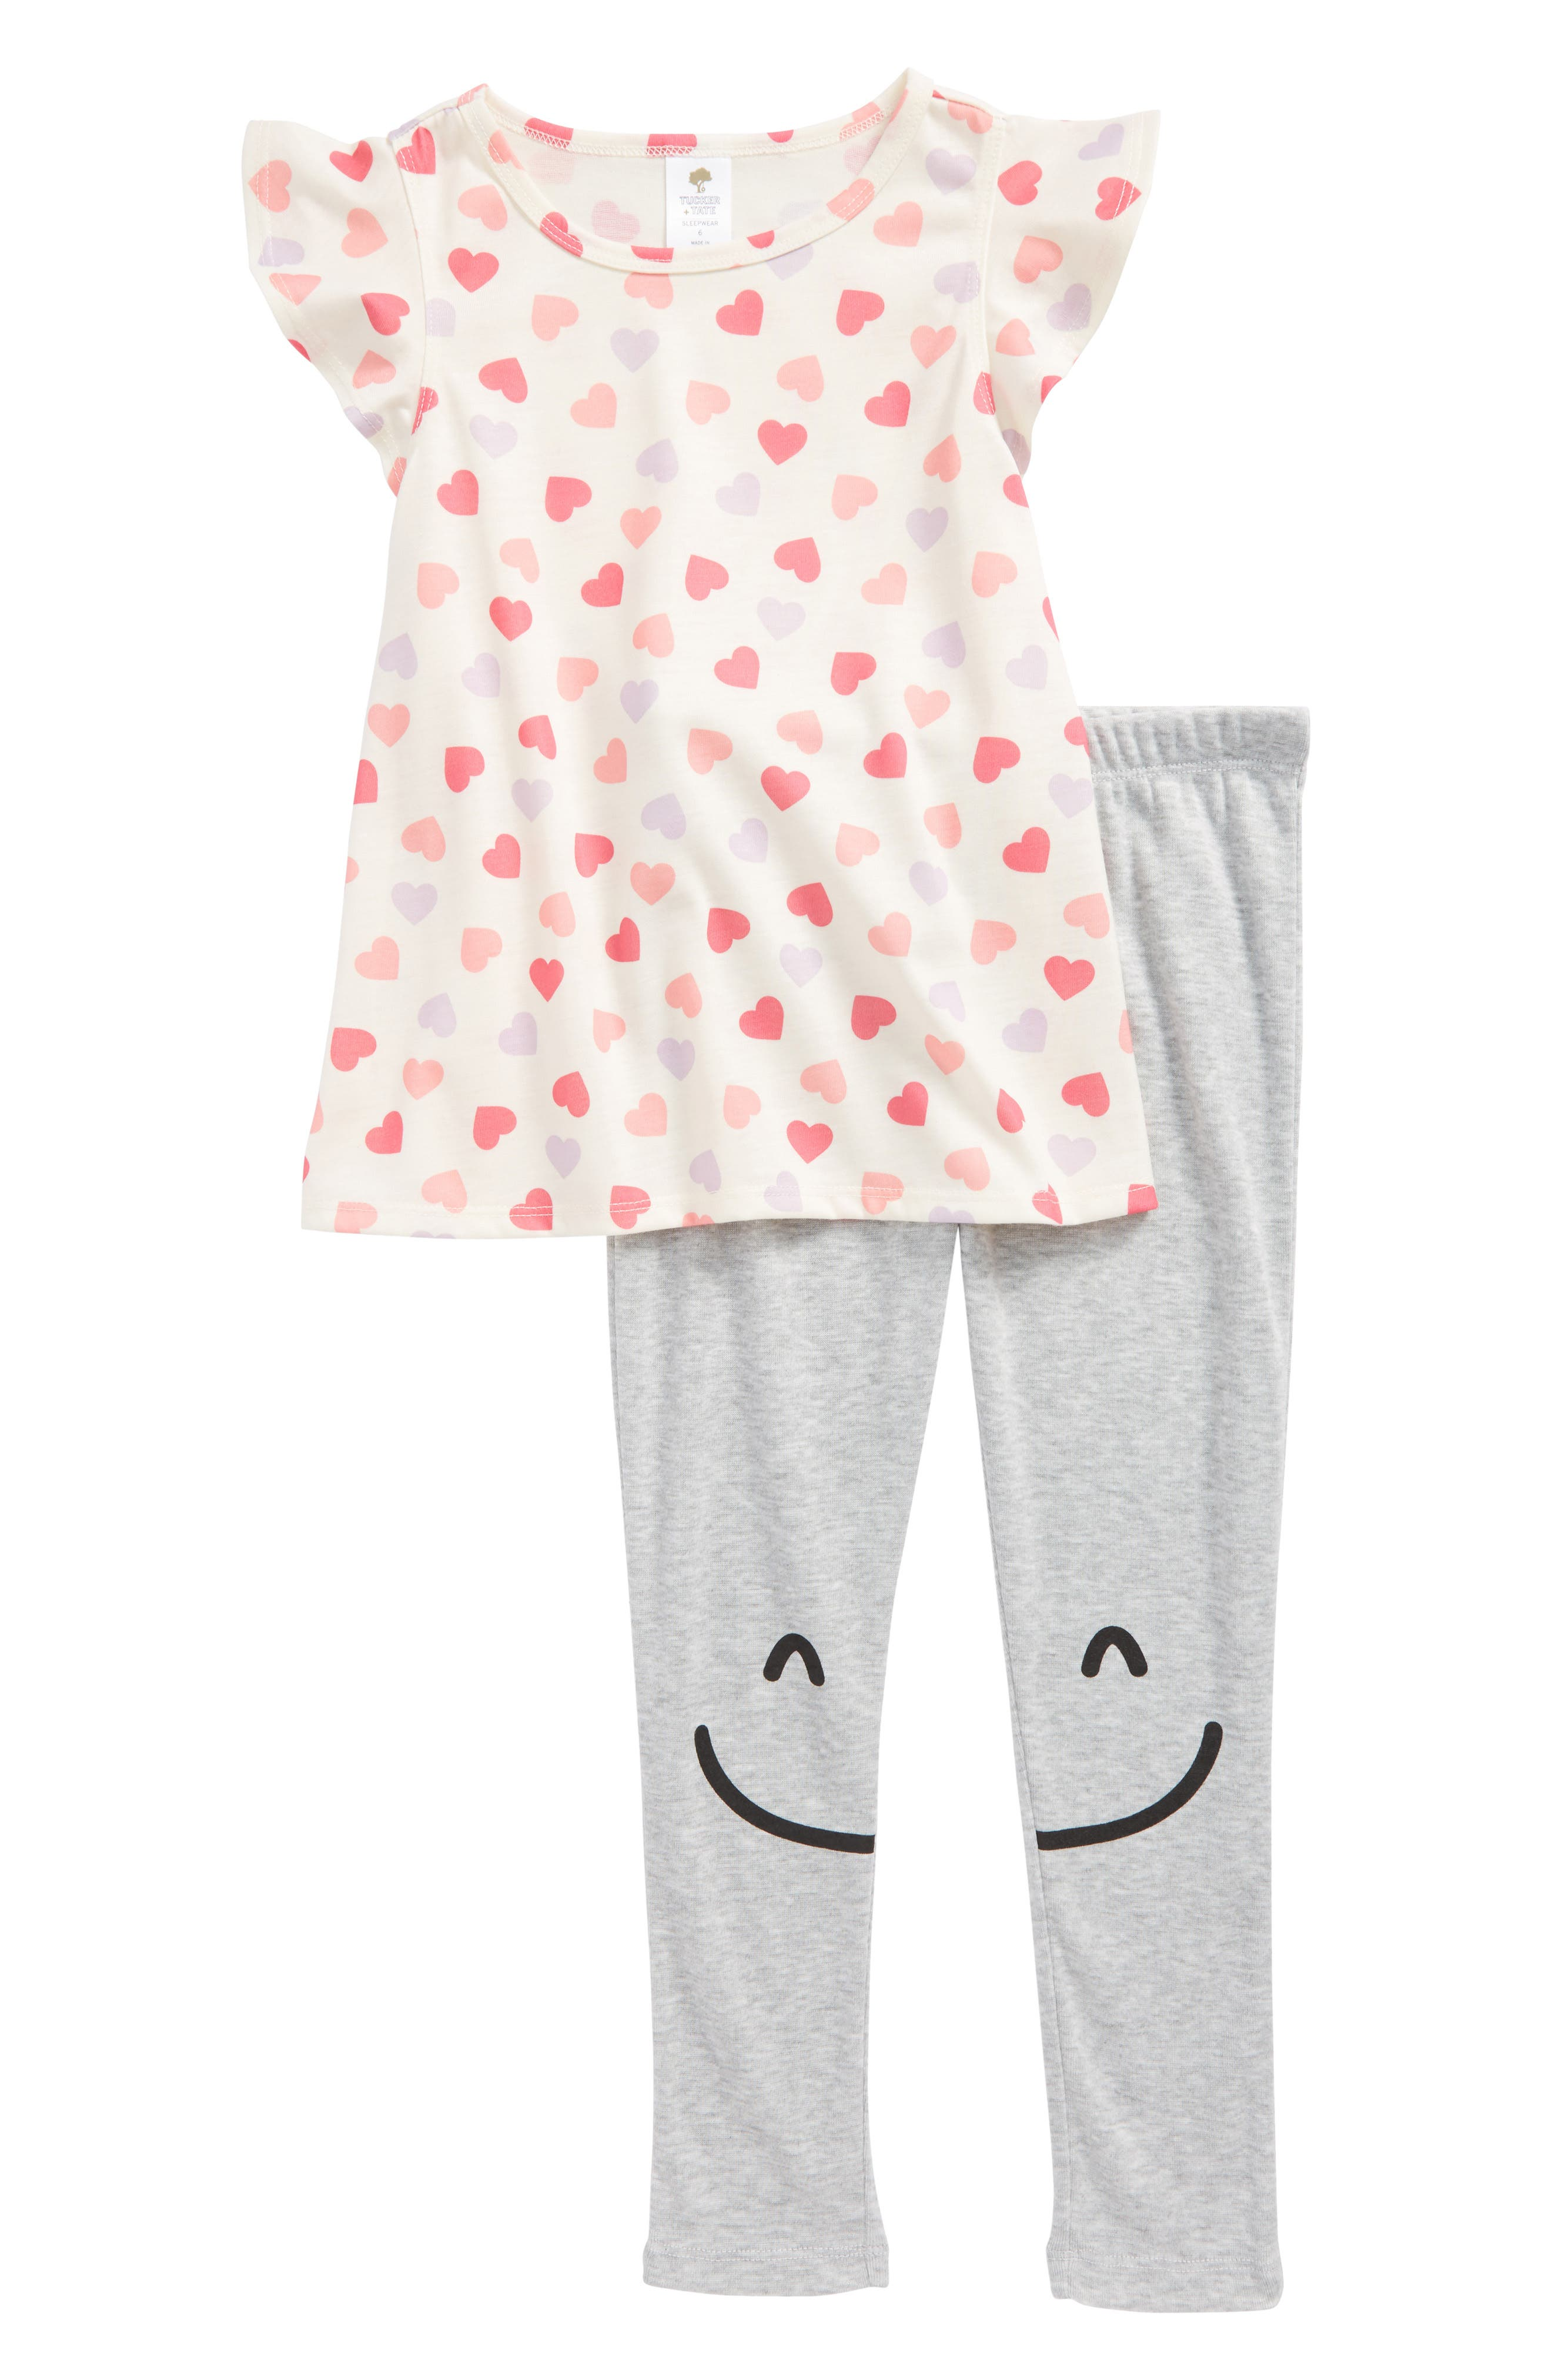 Graphic Print Two-Piece Pajamas,                             Main thumbnail 1, color,                             Ivory Egret Multi Hearts